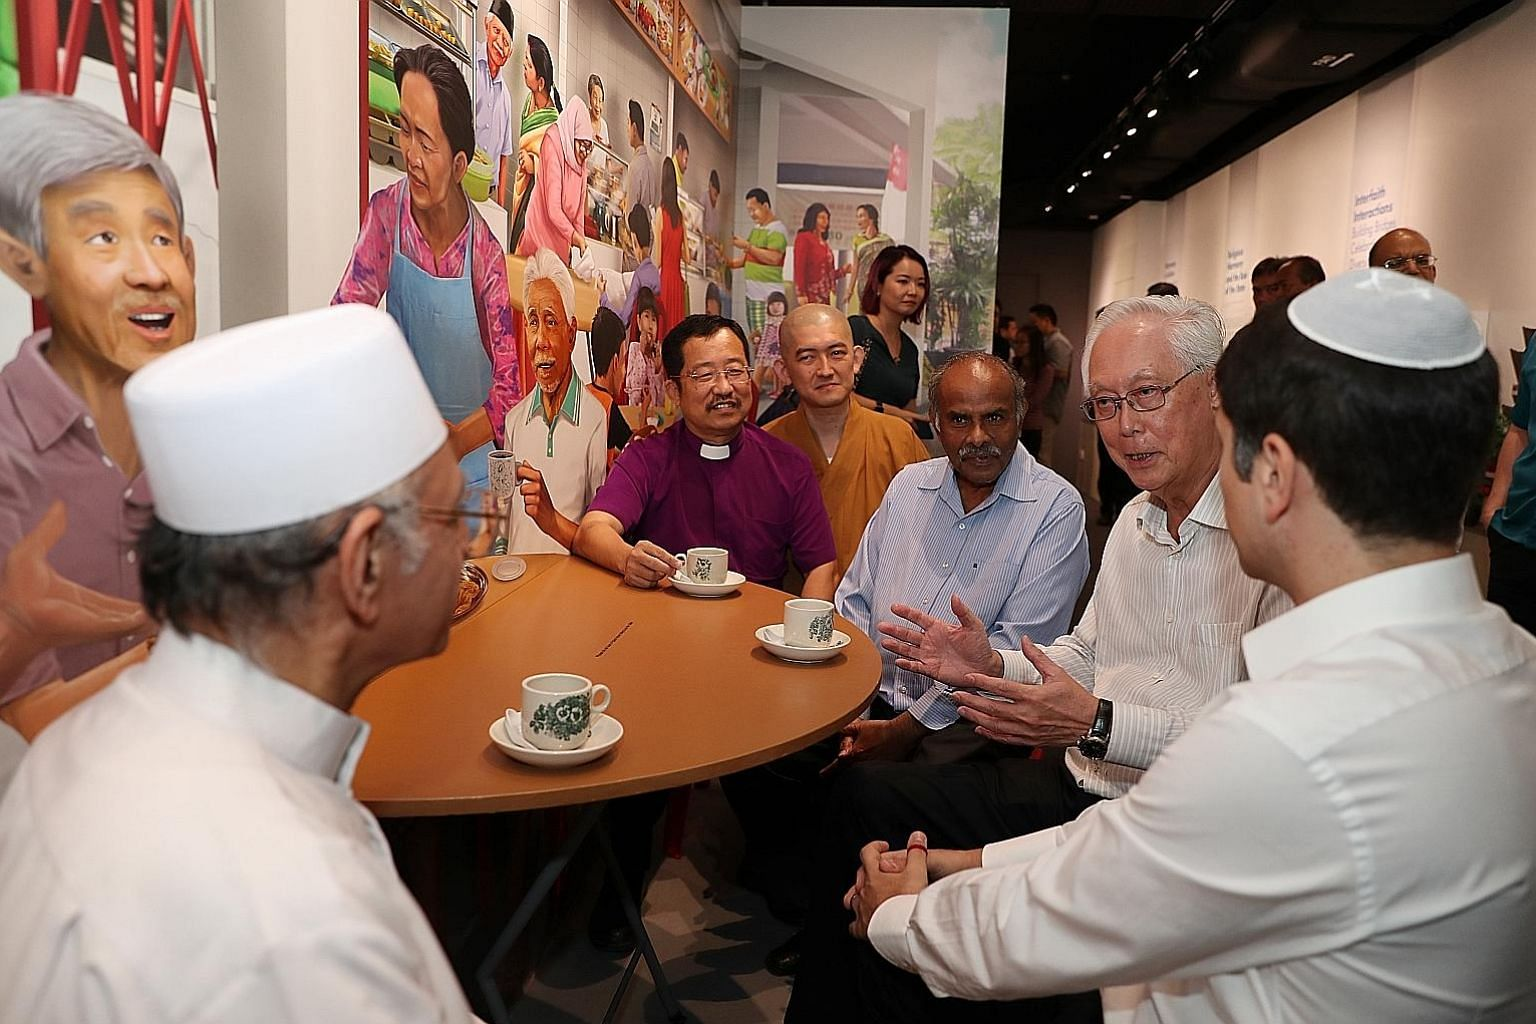 """I will promote, uphold and protect religious harmony for all,"" wrote ESM Goh in a pledge during his visit to the Harmony in Diversity Gallery yesterday. ESM Goh Chok Tong chatting with religious leader Imam Habib Hassan Al-Attas (left) and IRO presi"